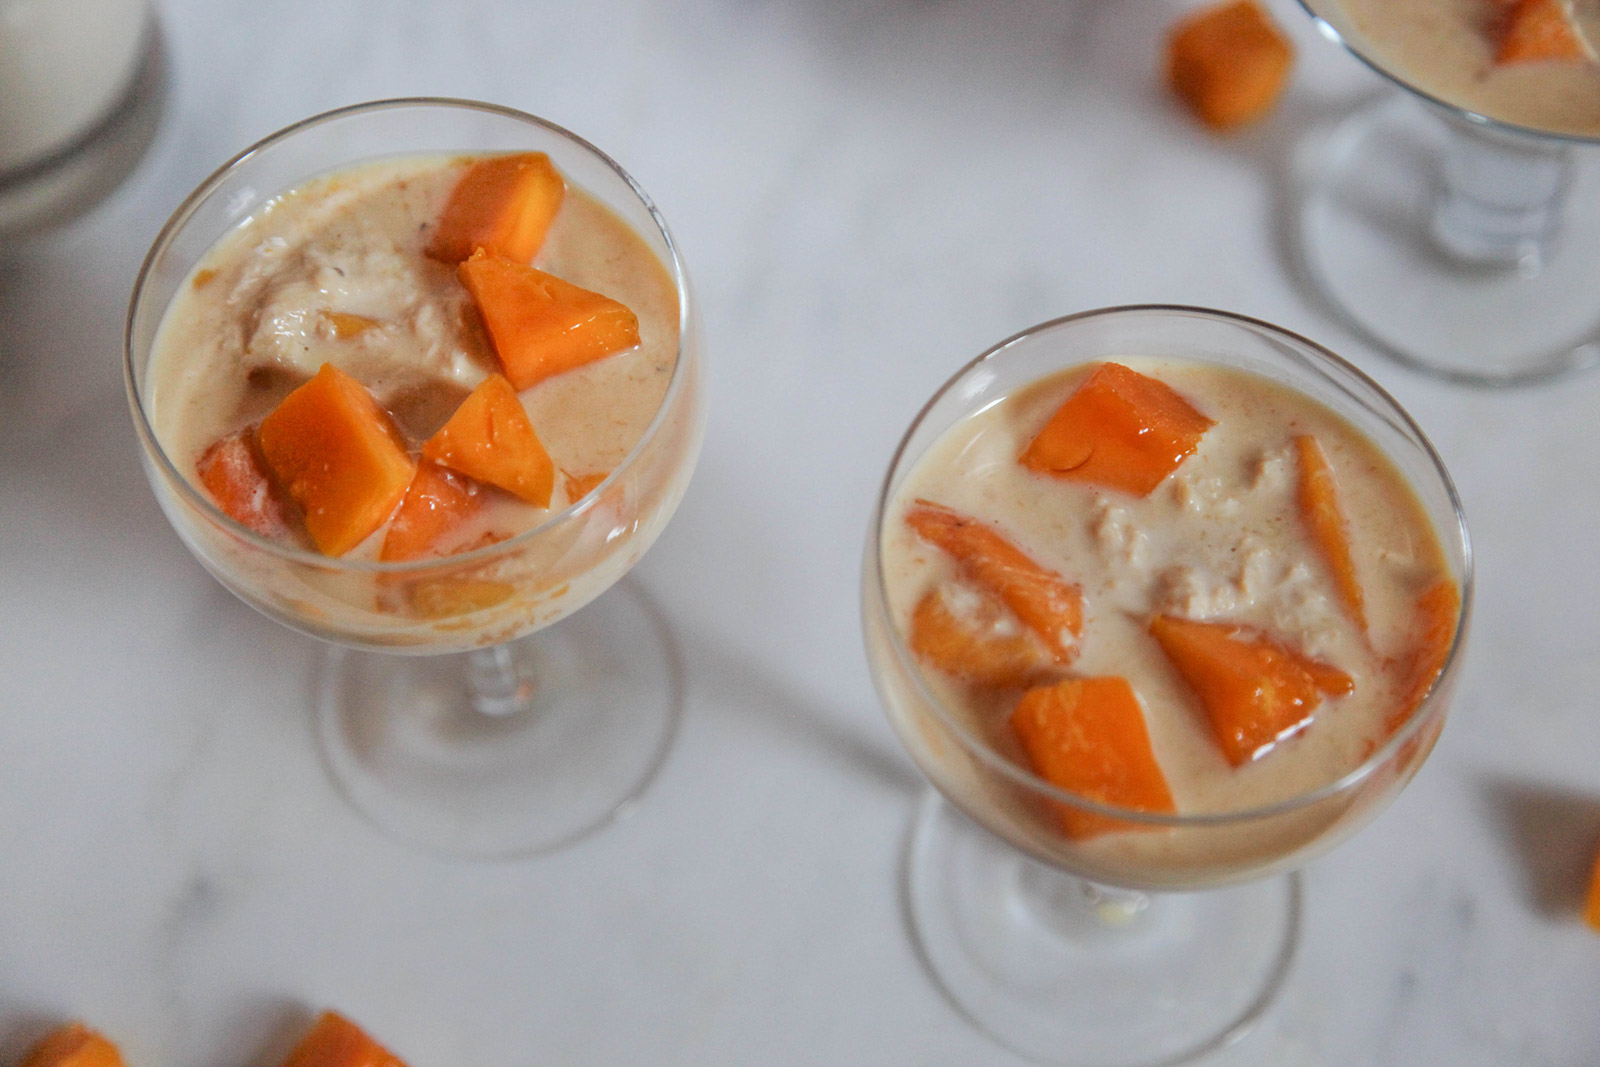 Simple heavenly dessert of sweet mango in creamy milk